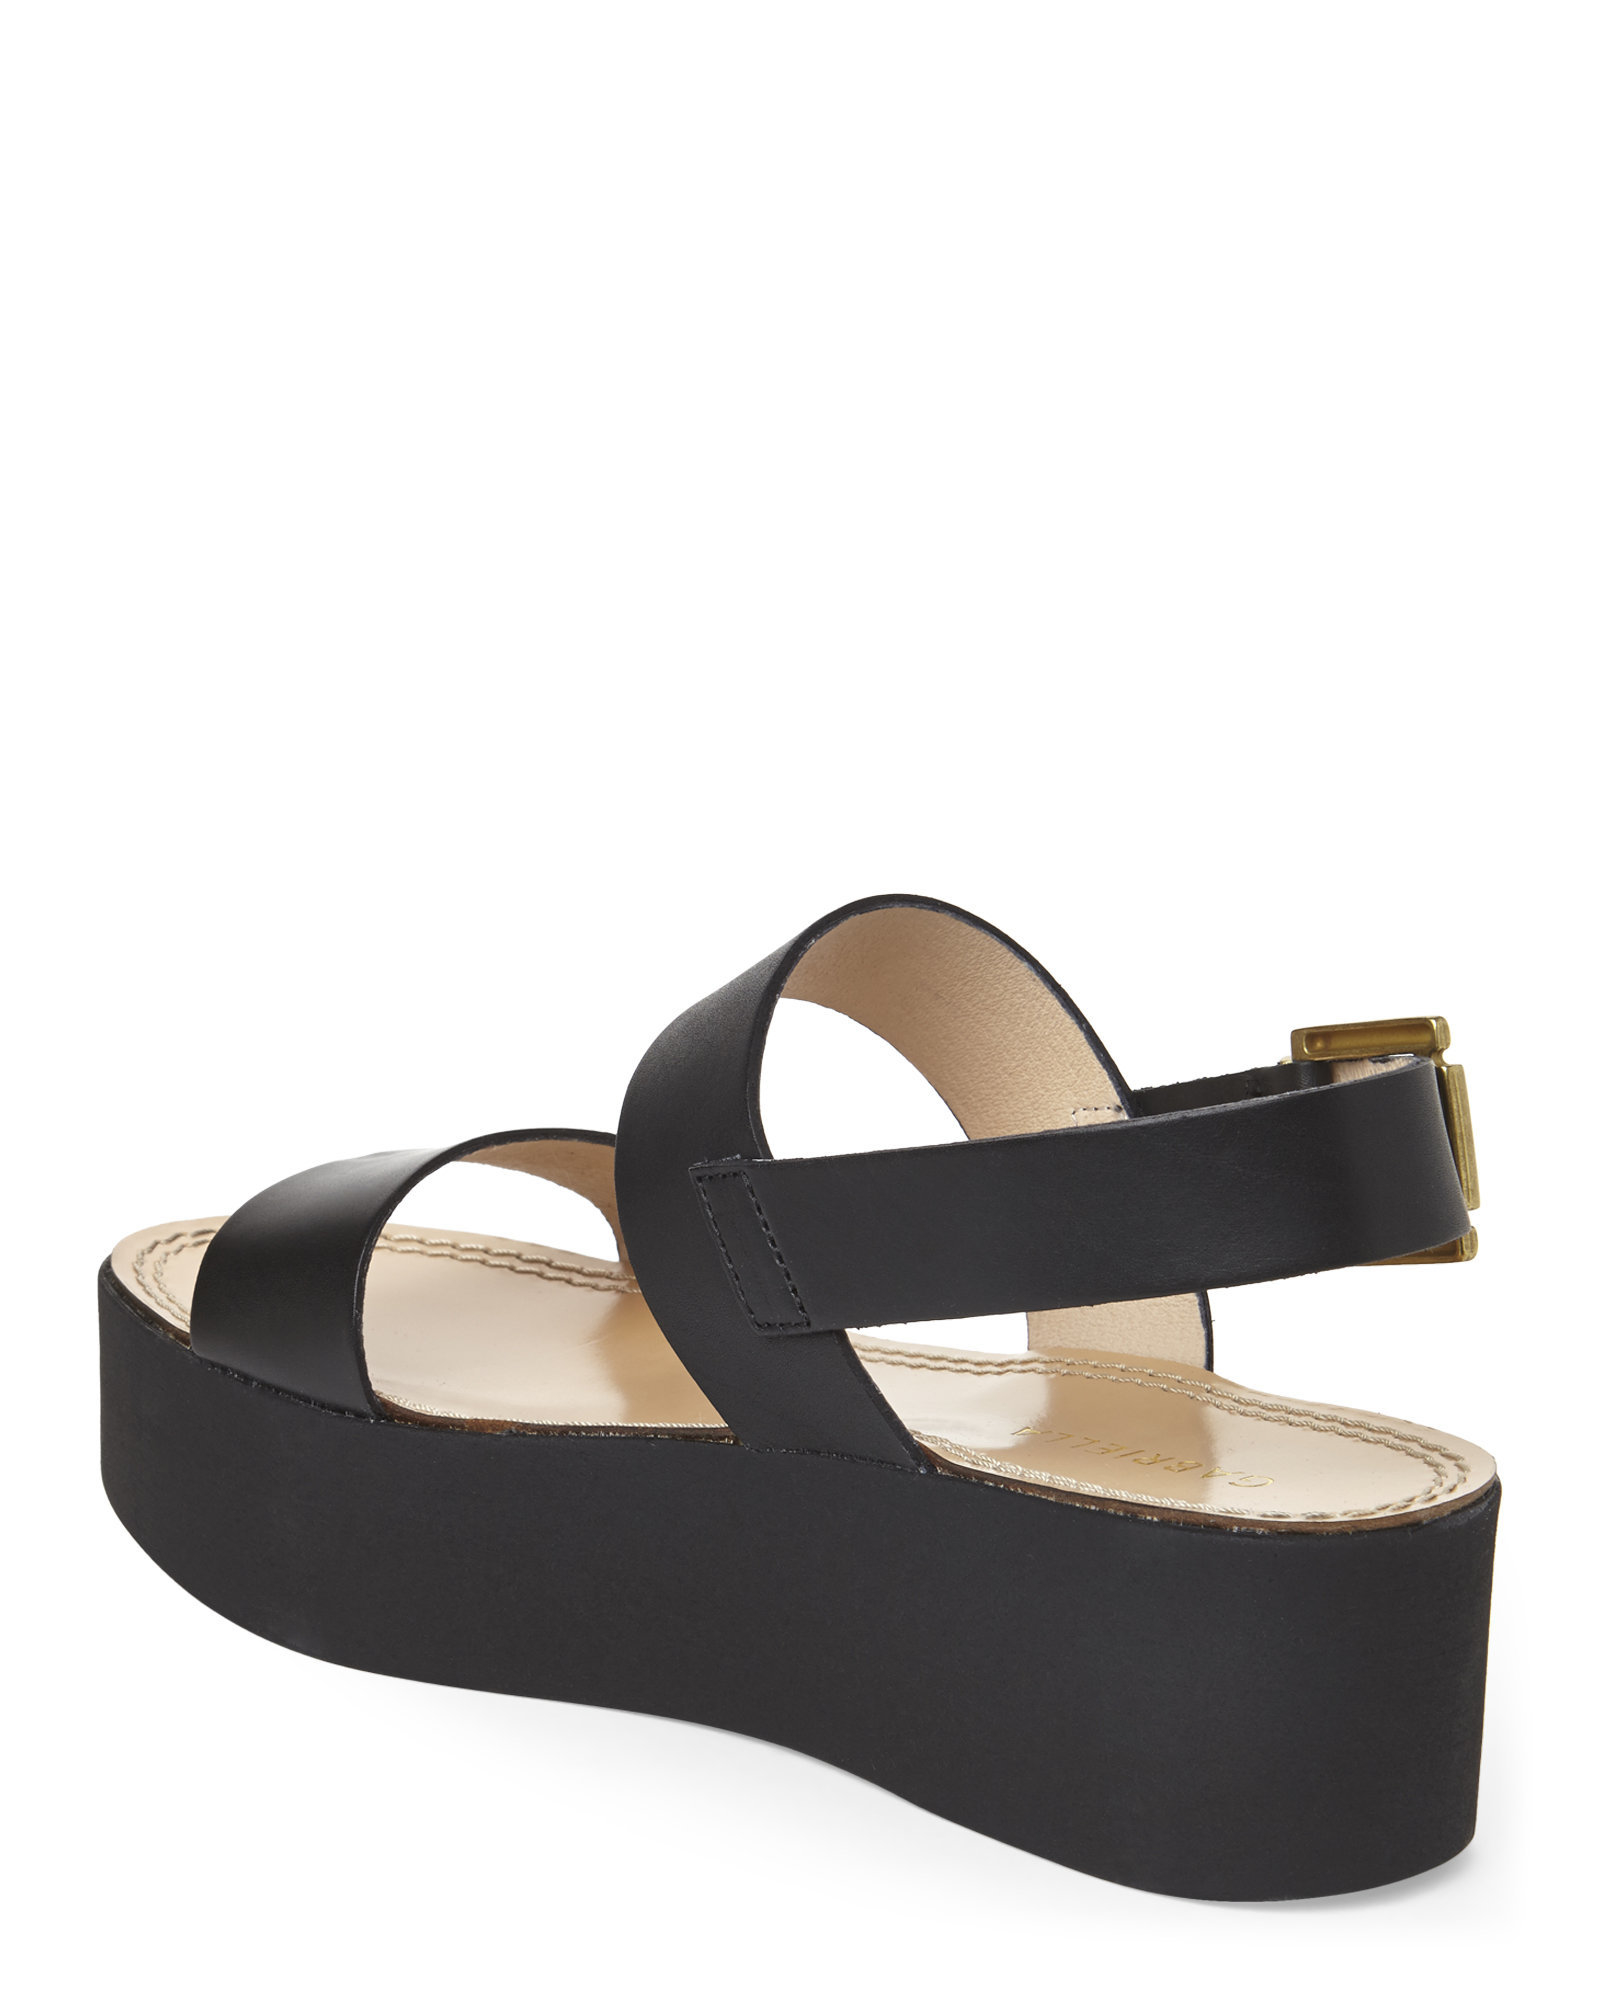 Shop for Black Platform Sandals, Women's Black Platform Sandals and Juniors Black Platform Sandals at Macy's.